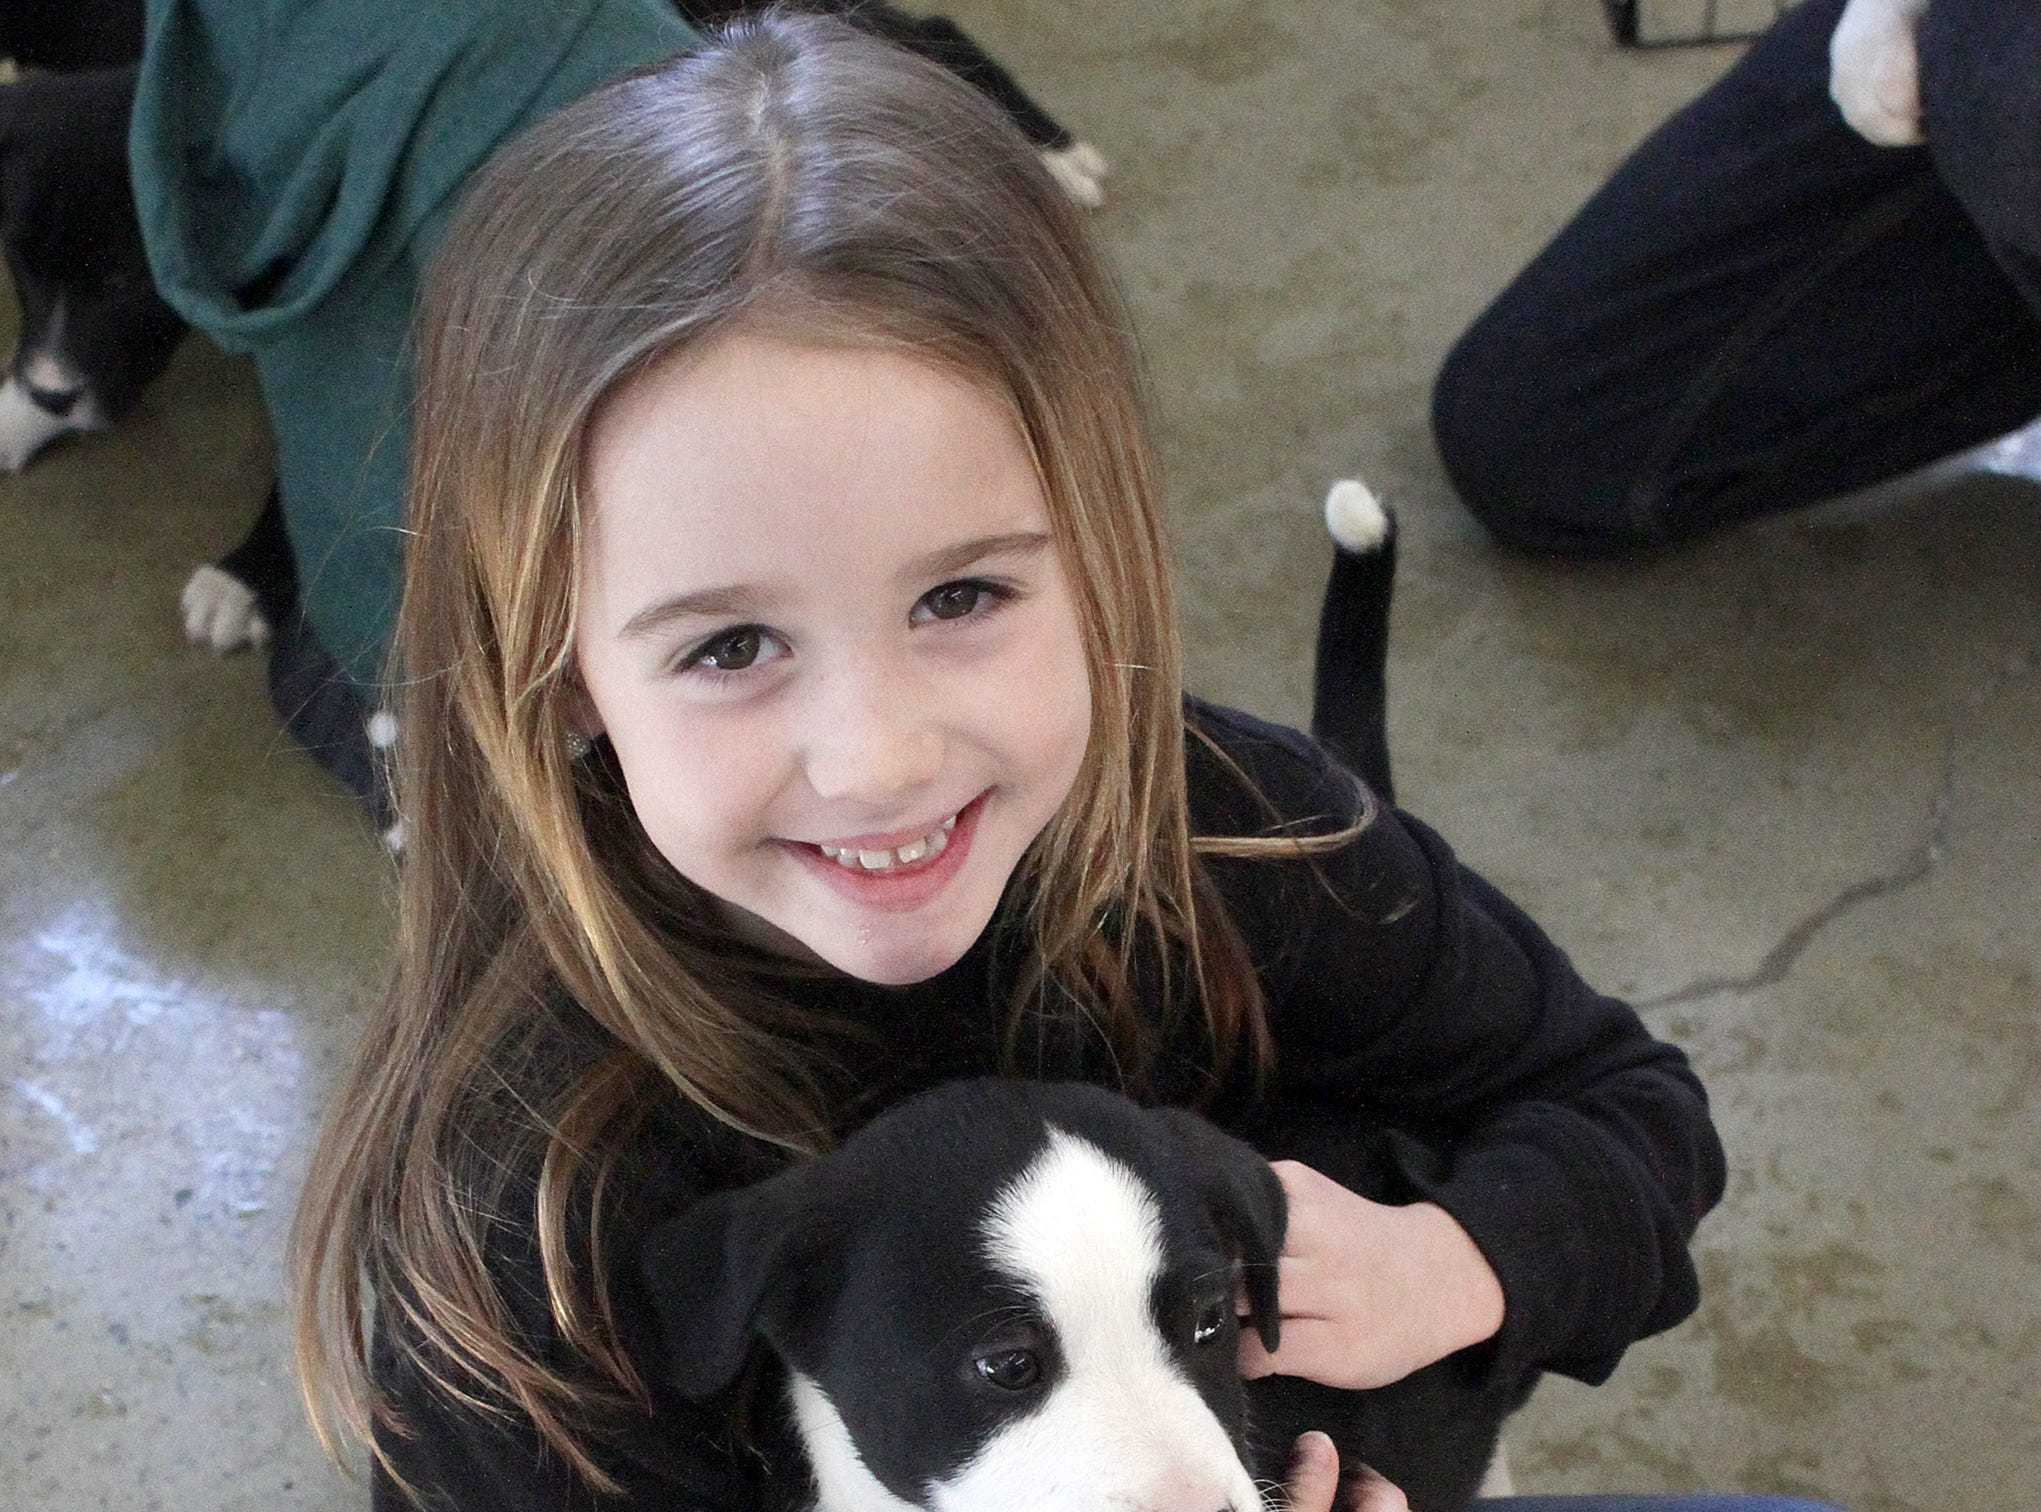 Lily Evans (8) has fun with a puppy at Jojo's Doghouse adoption event at Pet Supplies Plus in Hendersonville, TN on Saturday, January 5, 2019.